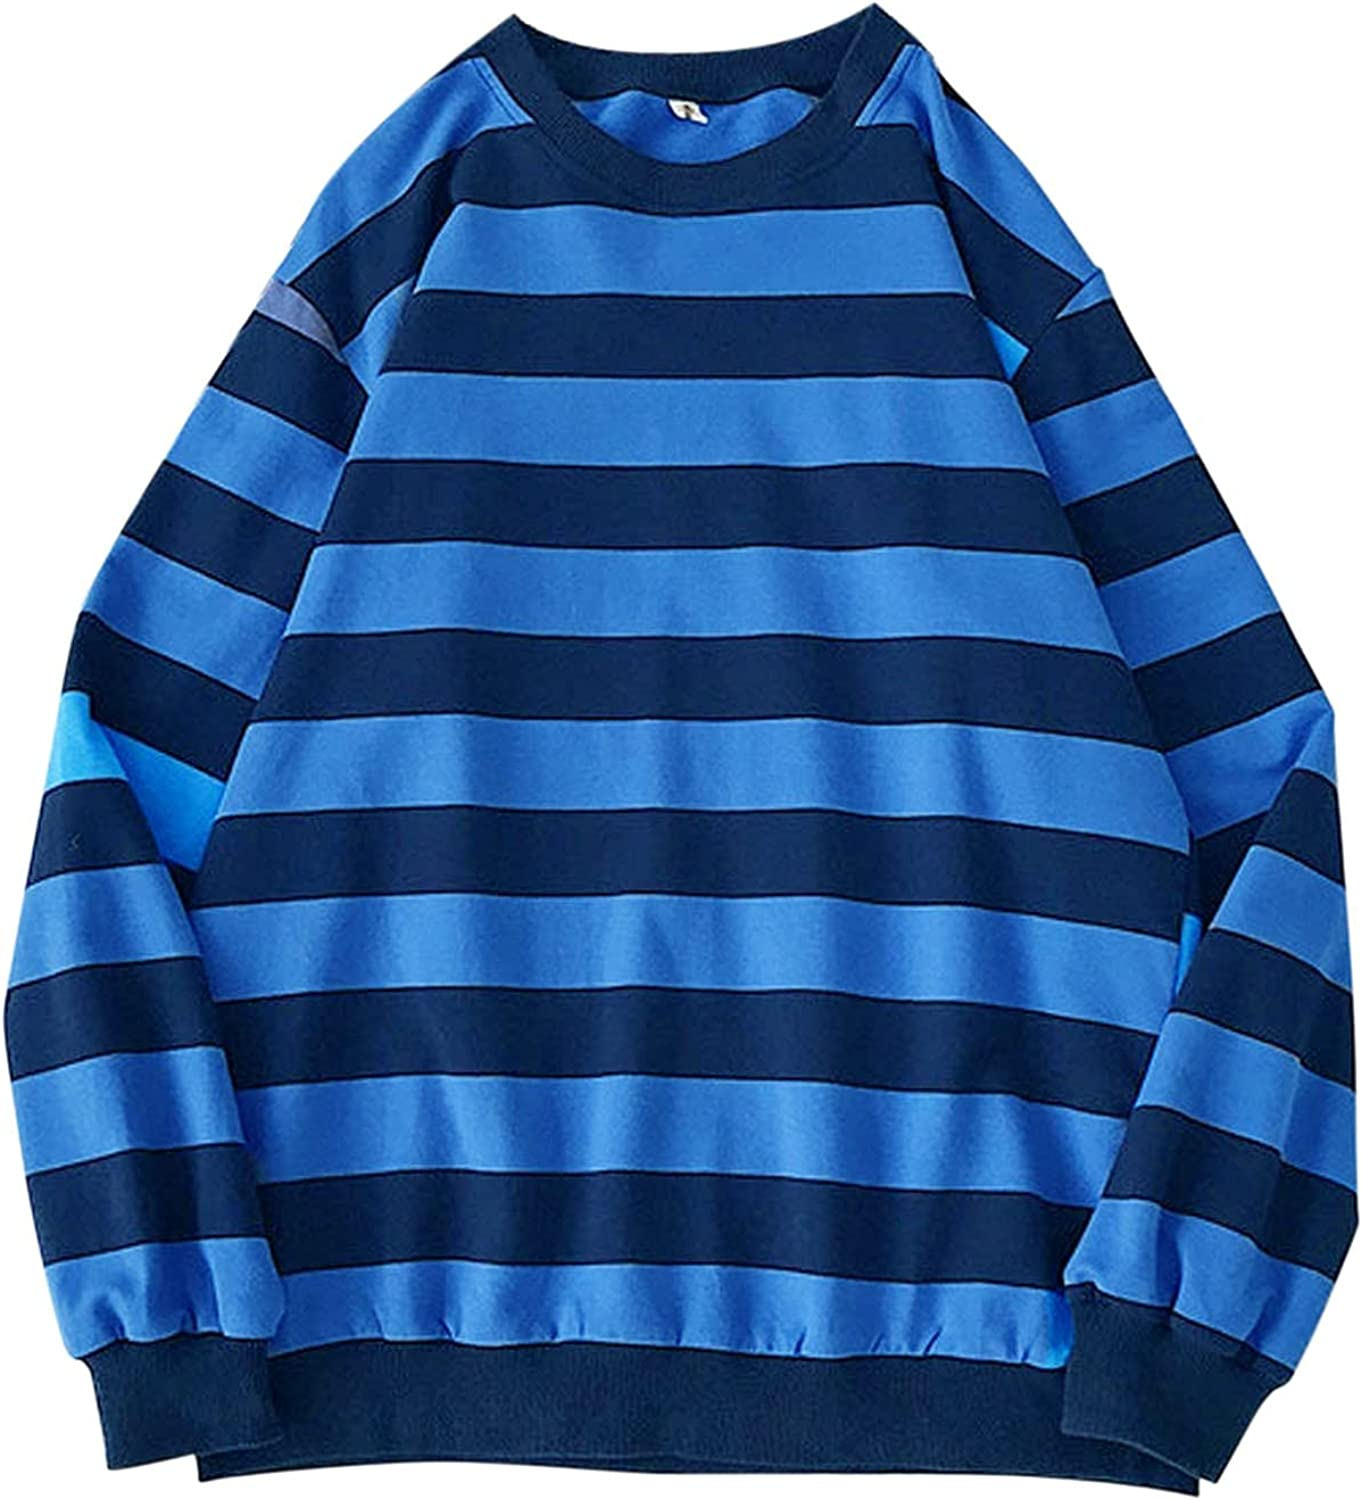 XXBR Striped Sweatshirts for Mens, Fall Long Sleeve Crewneck Loose Tops Young Teen Boys Street Fashion Casual Pullover